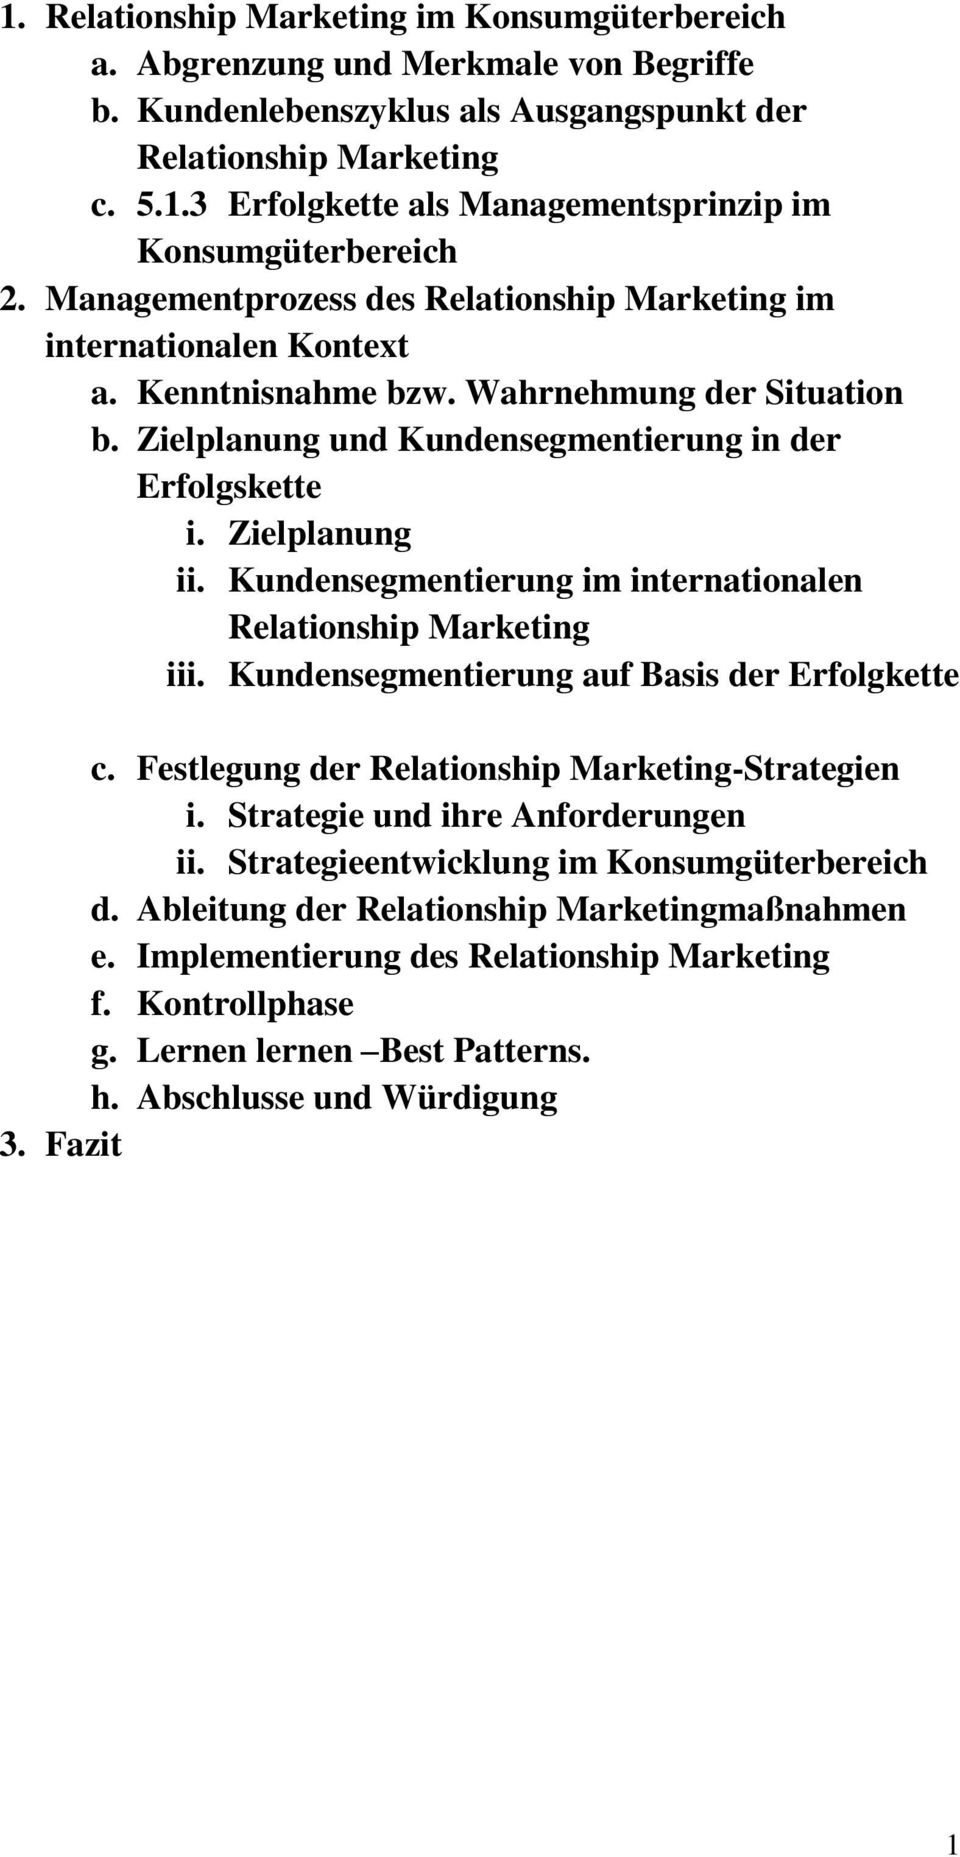 Kundensegmentierung im internationalen Relationship Marketing iii. Kundensegmentierung auf Basis der Erfolgkette c. Festlegung der Relationship Marketing-Strategien i.